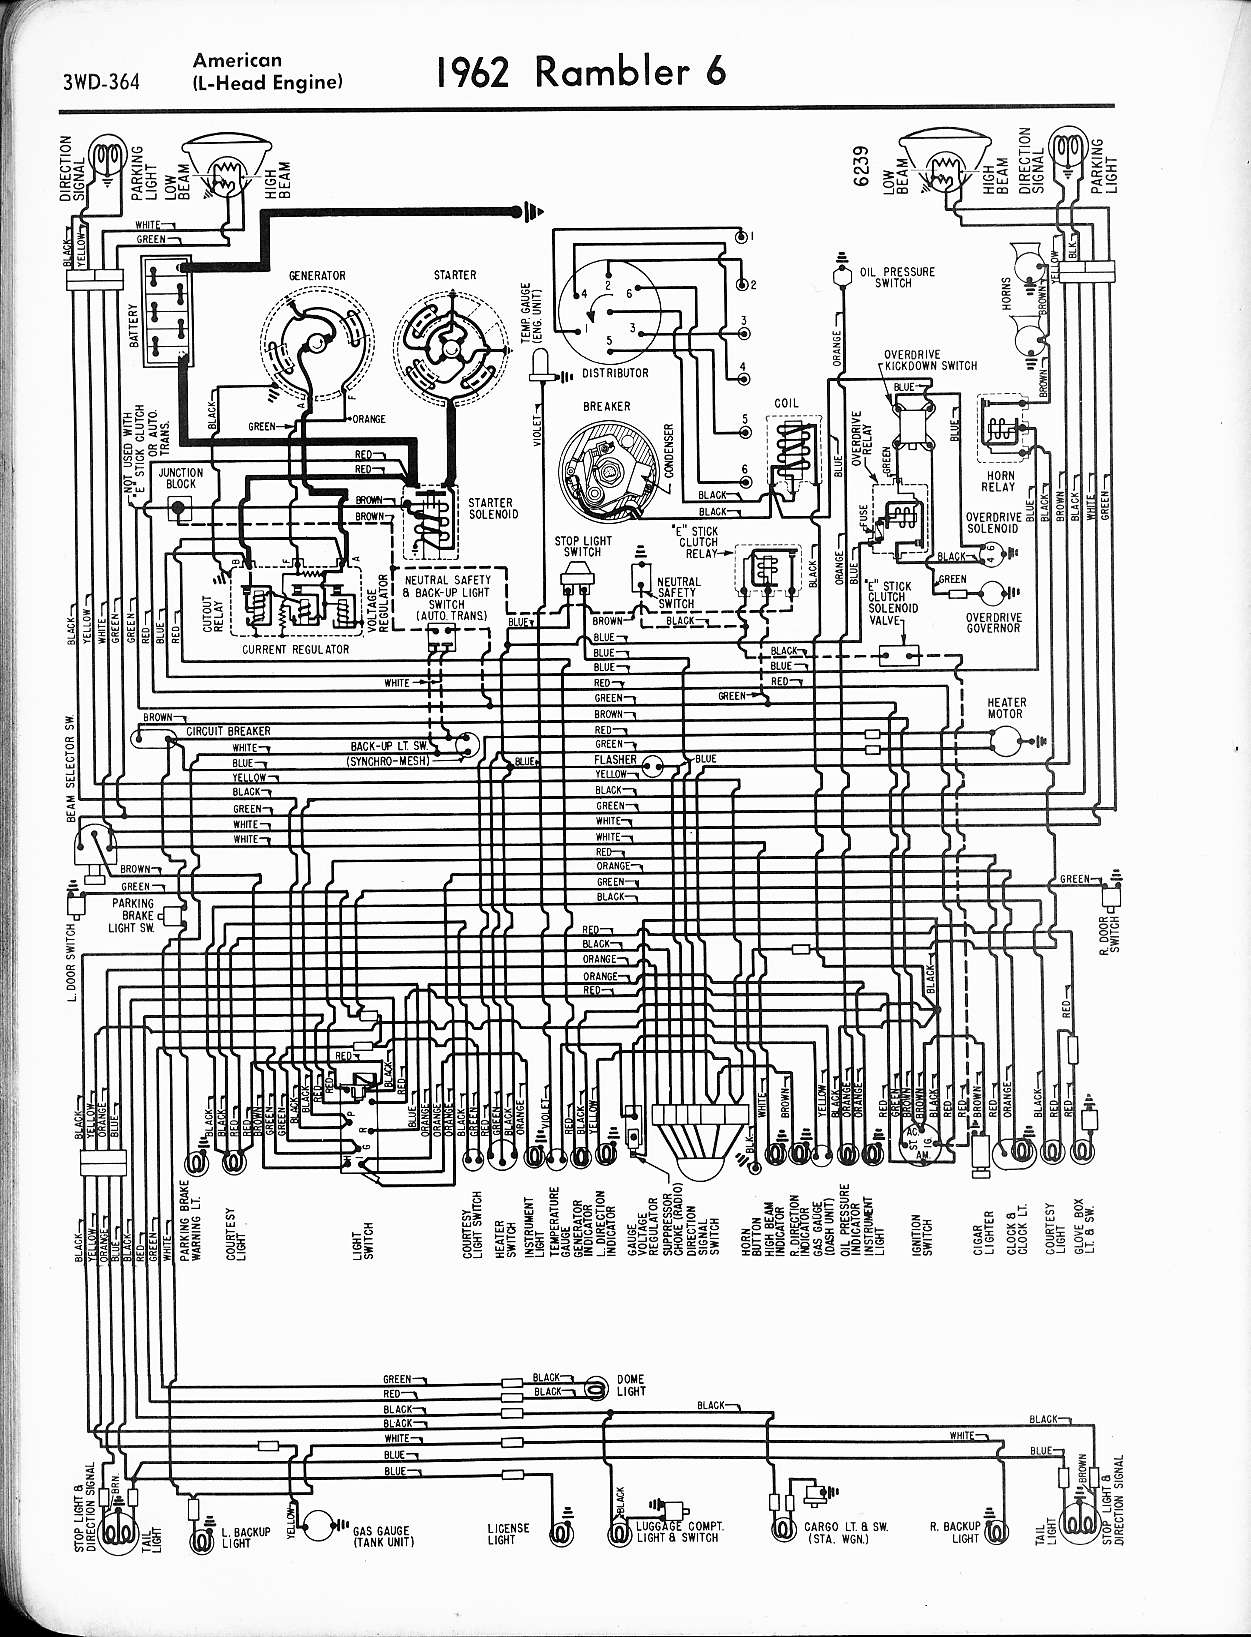 Dodge A100 Wiring Diagram Library 1967 Charger Diagrams 1968 Amc Rebel Free Engine Image